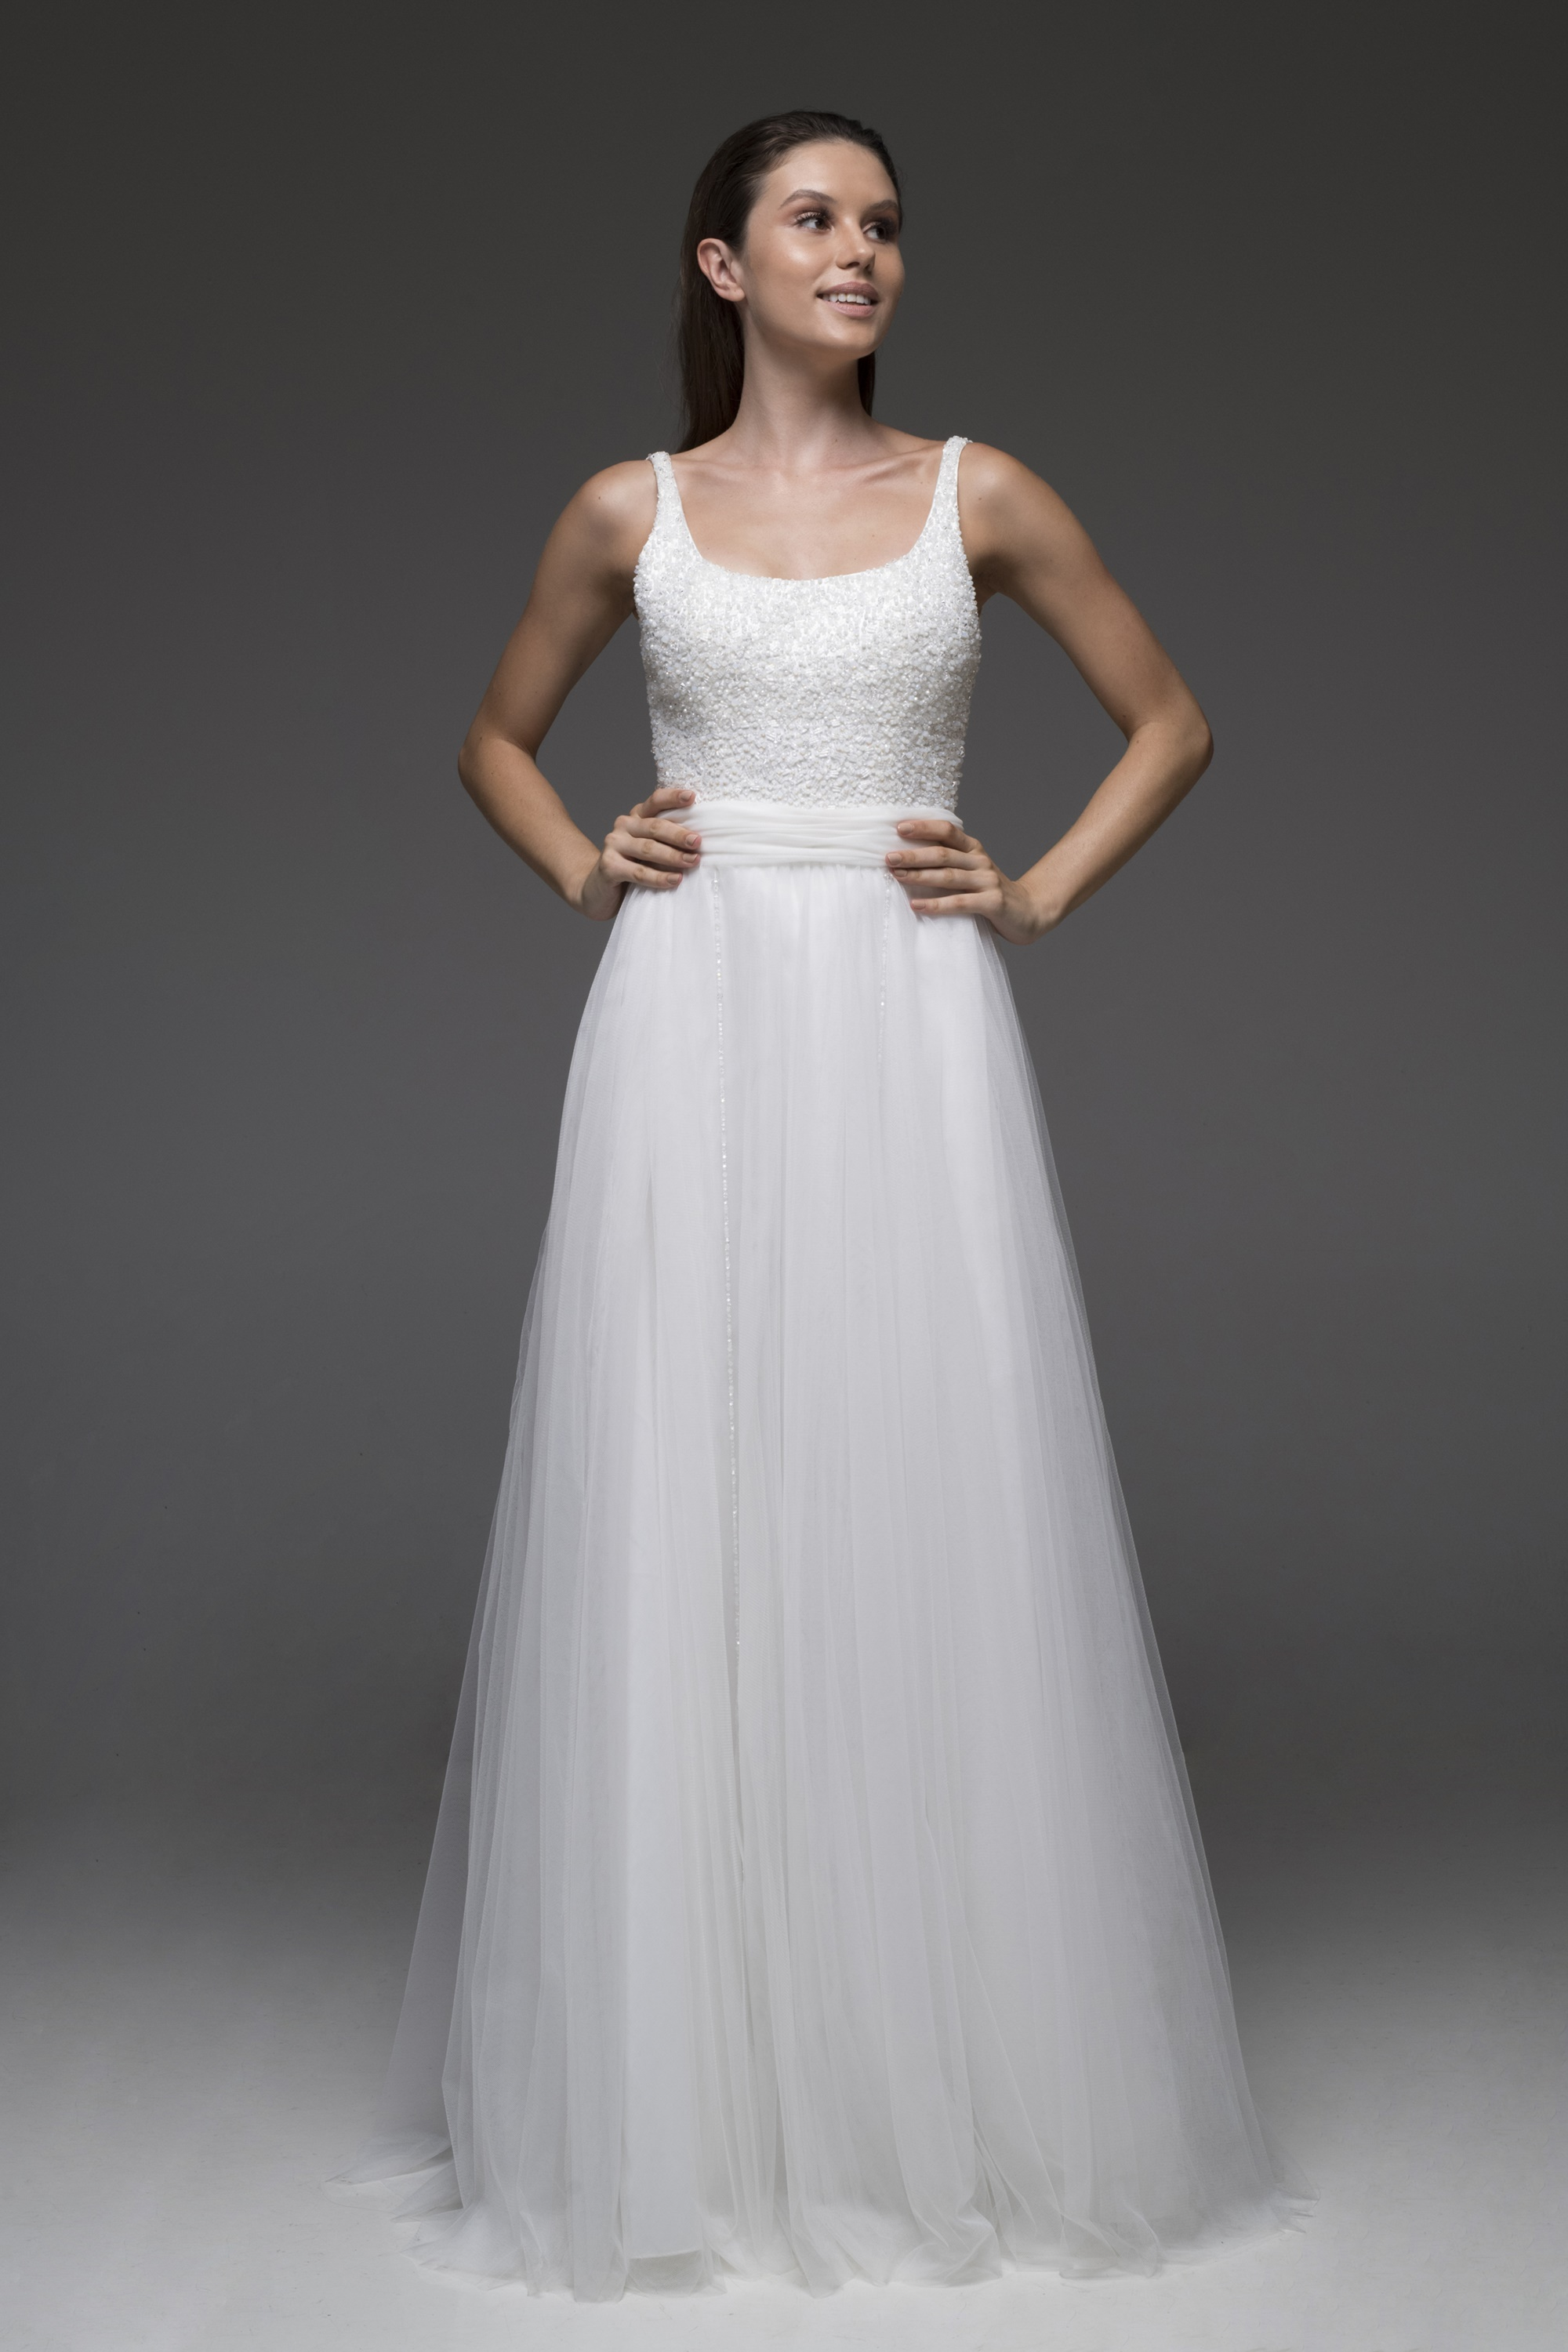 Haute couture wedding dresses by Maison Renata Marmara